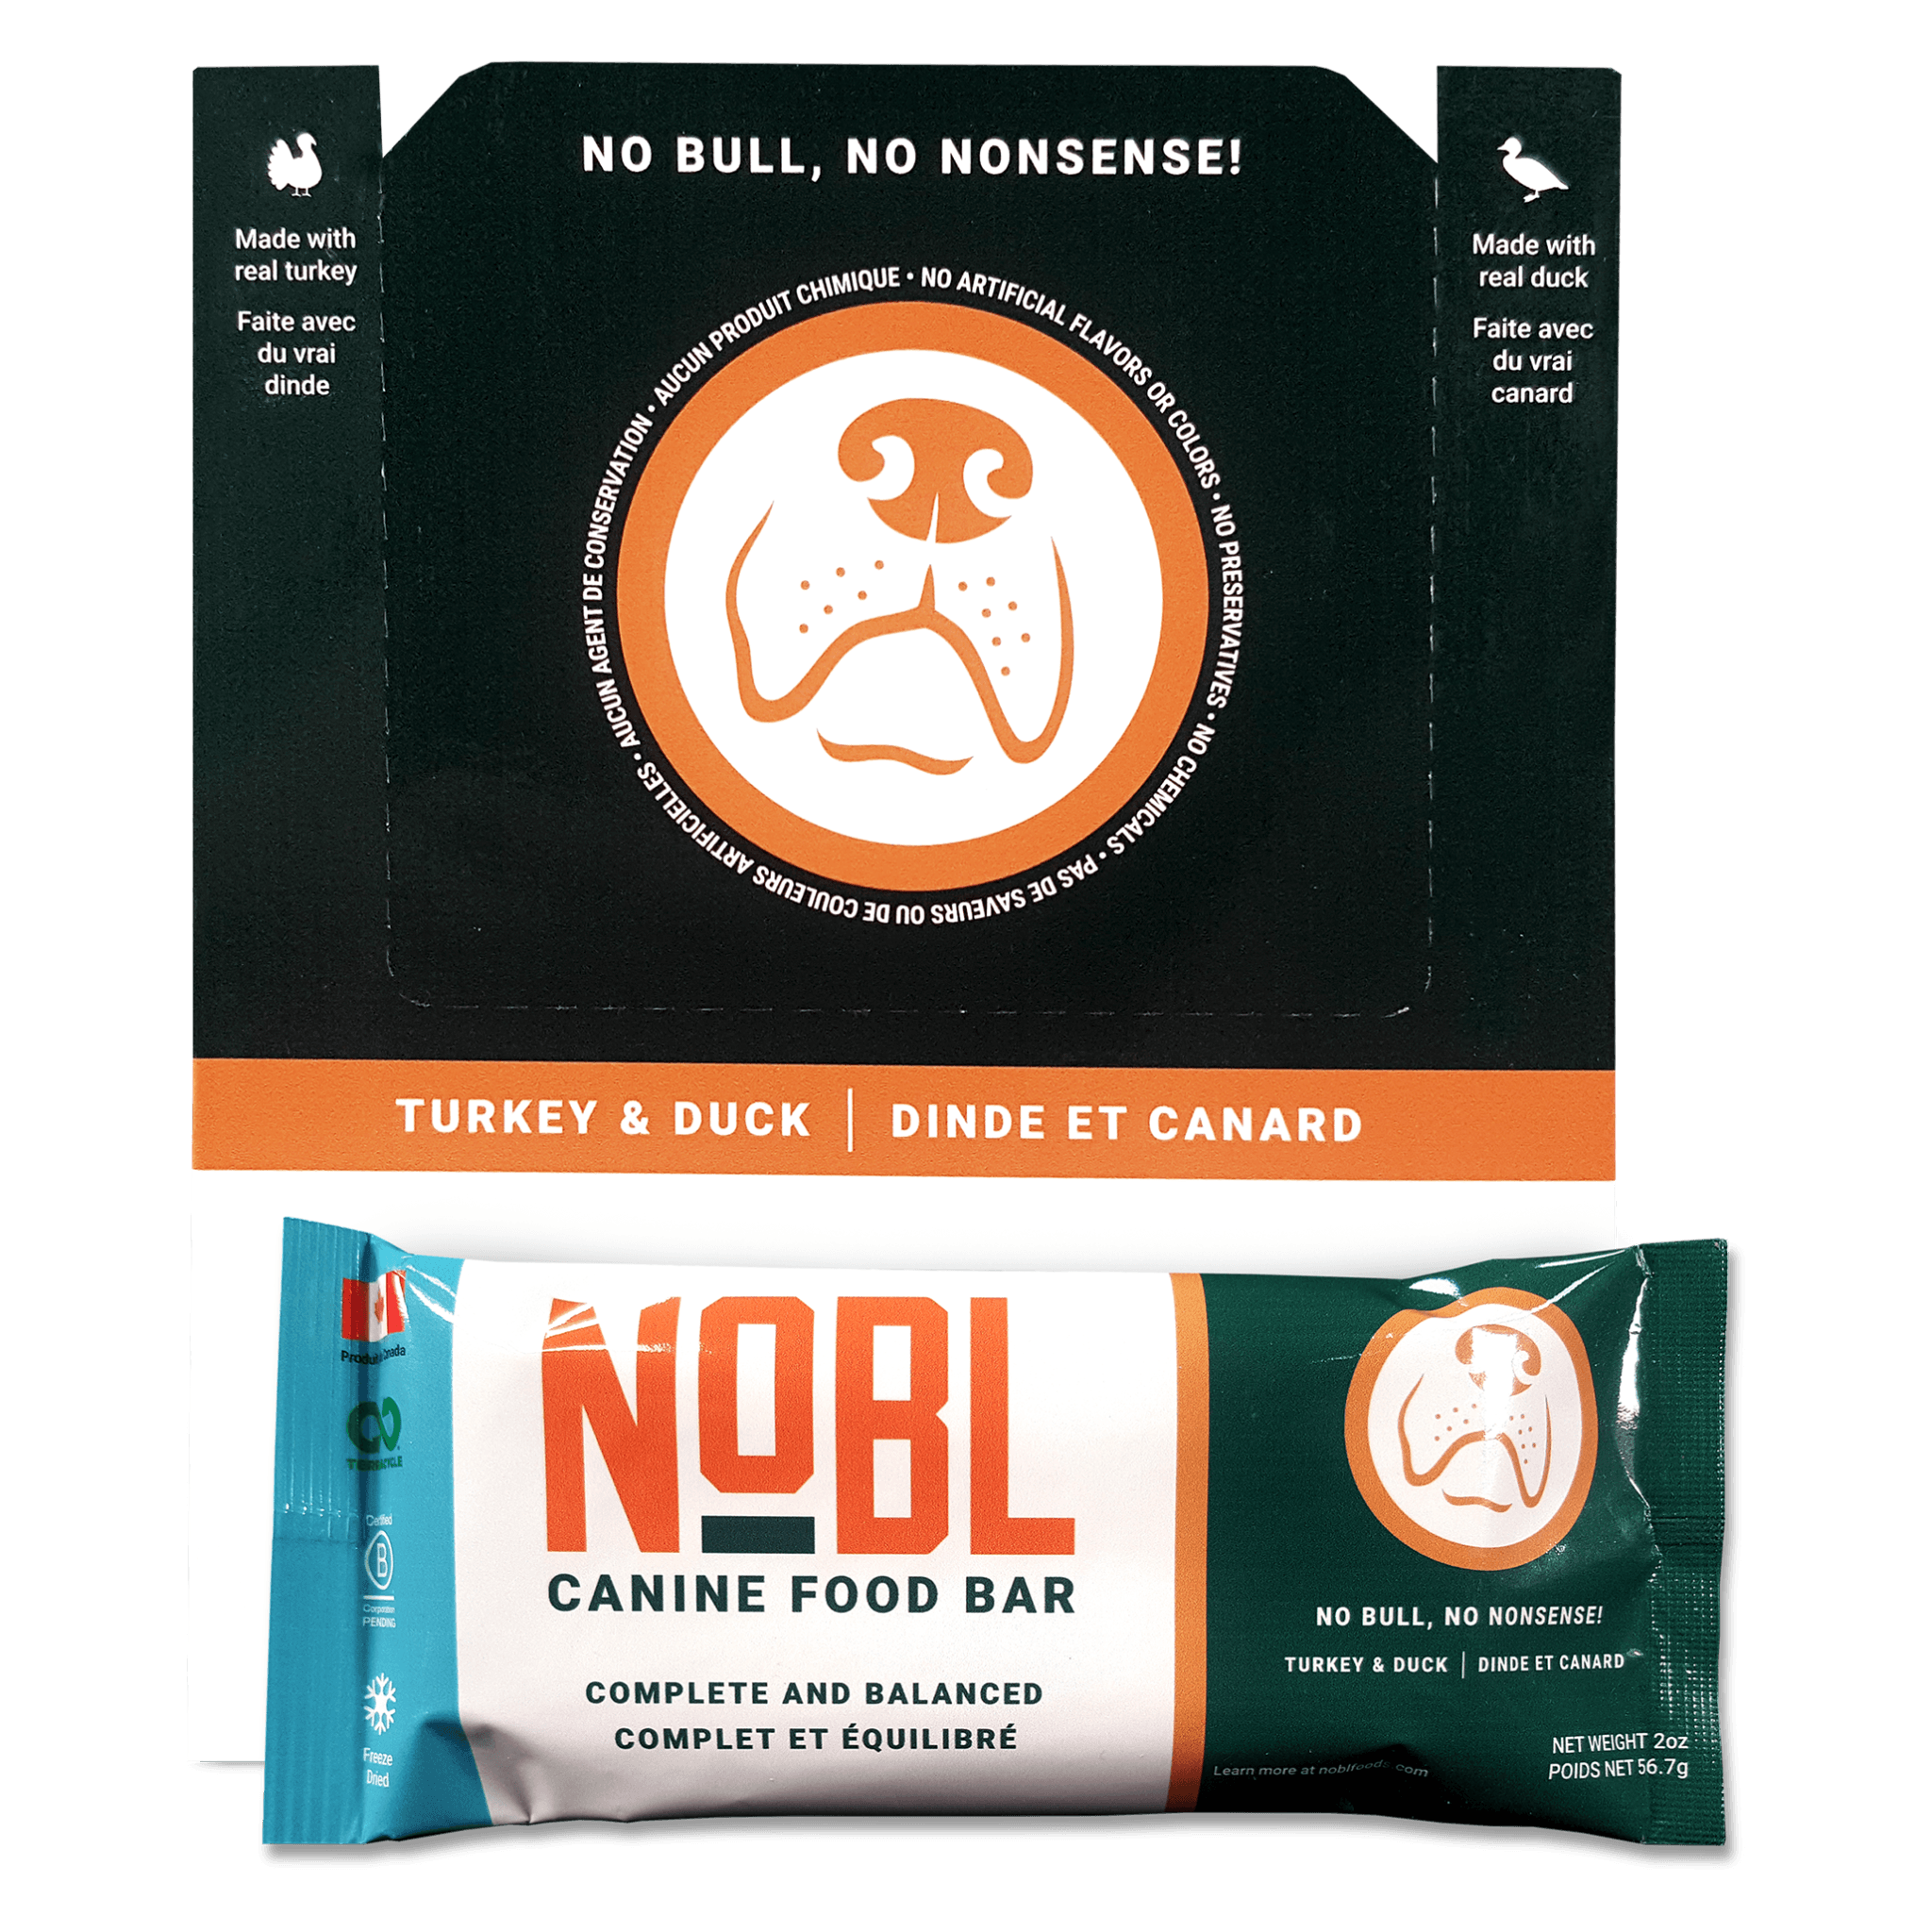 RETAIL ORDER - ADULT CANINE FOOD BARS: TURKEY & DUCK RECIPE: 12 BAR CASE - NOBL Foods